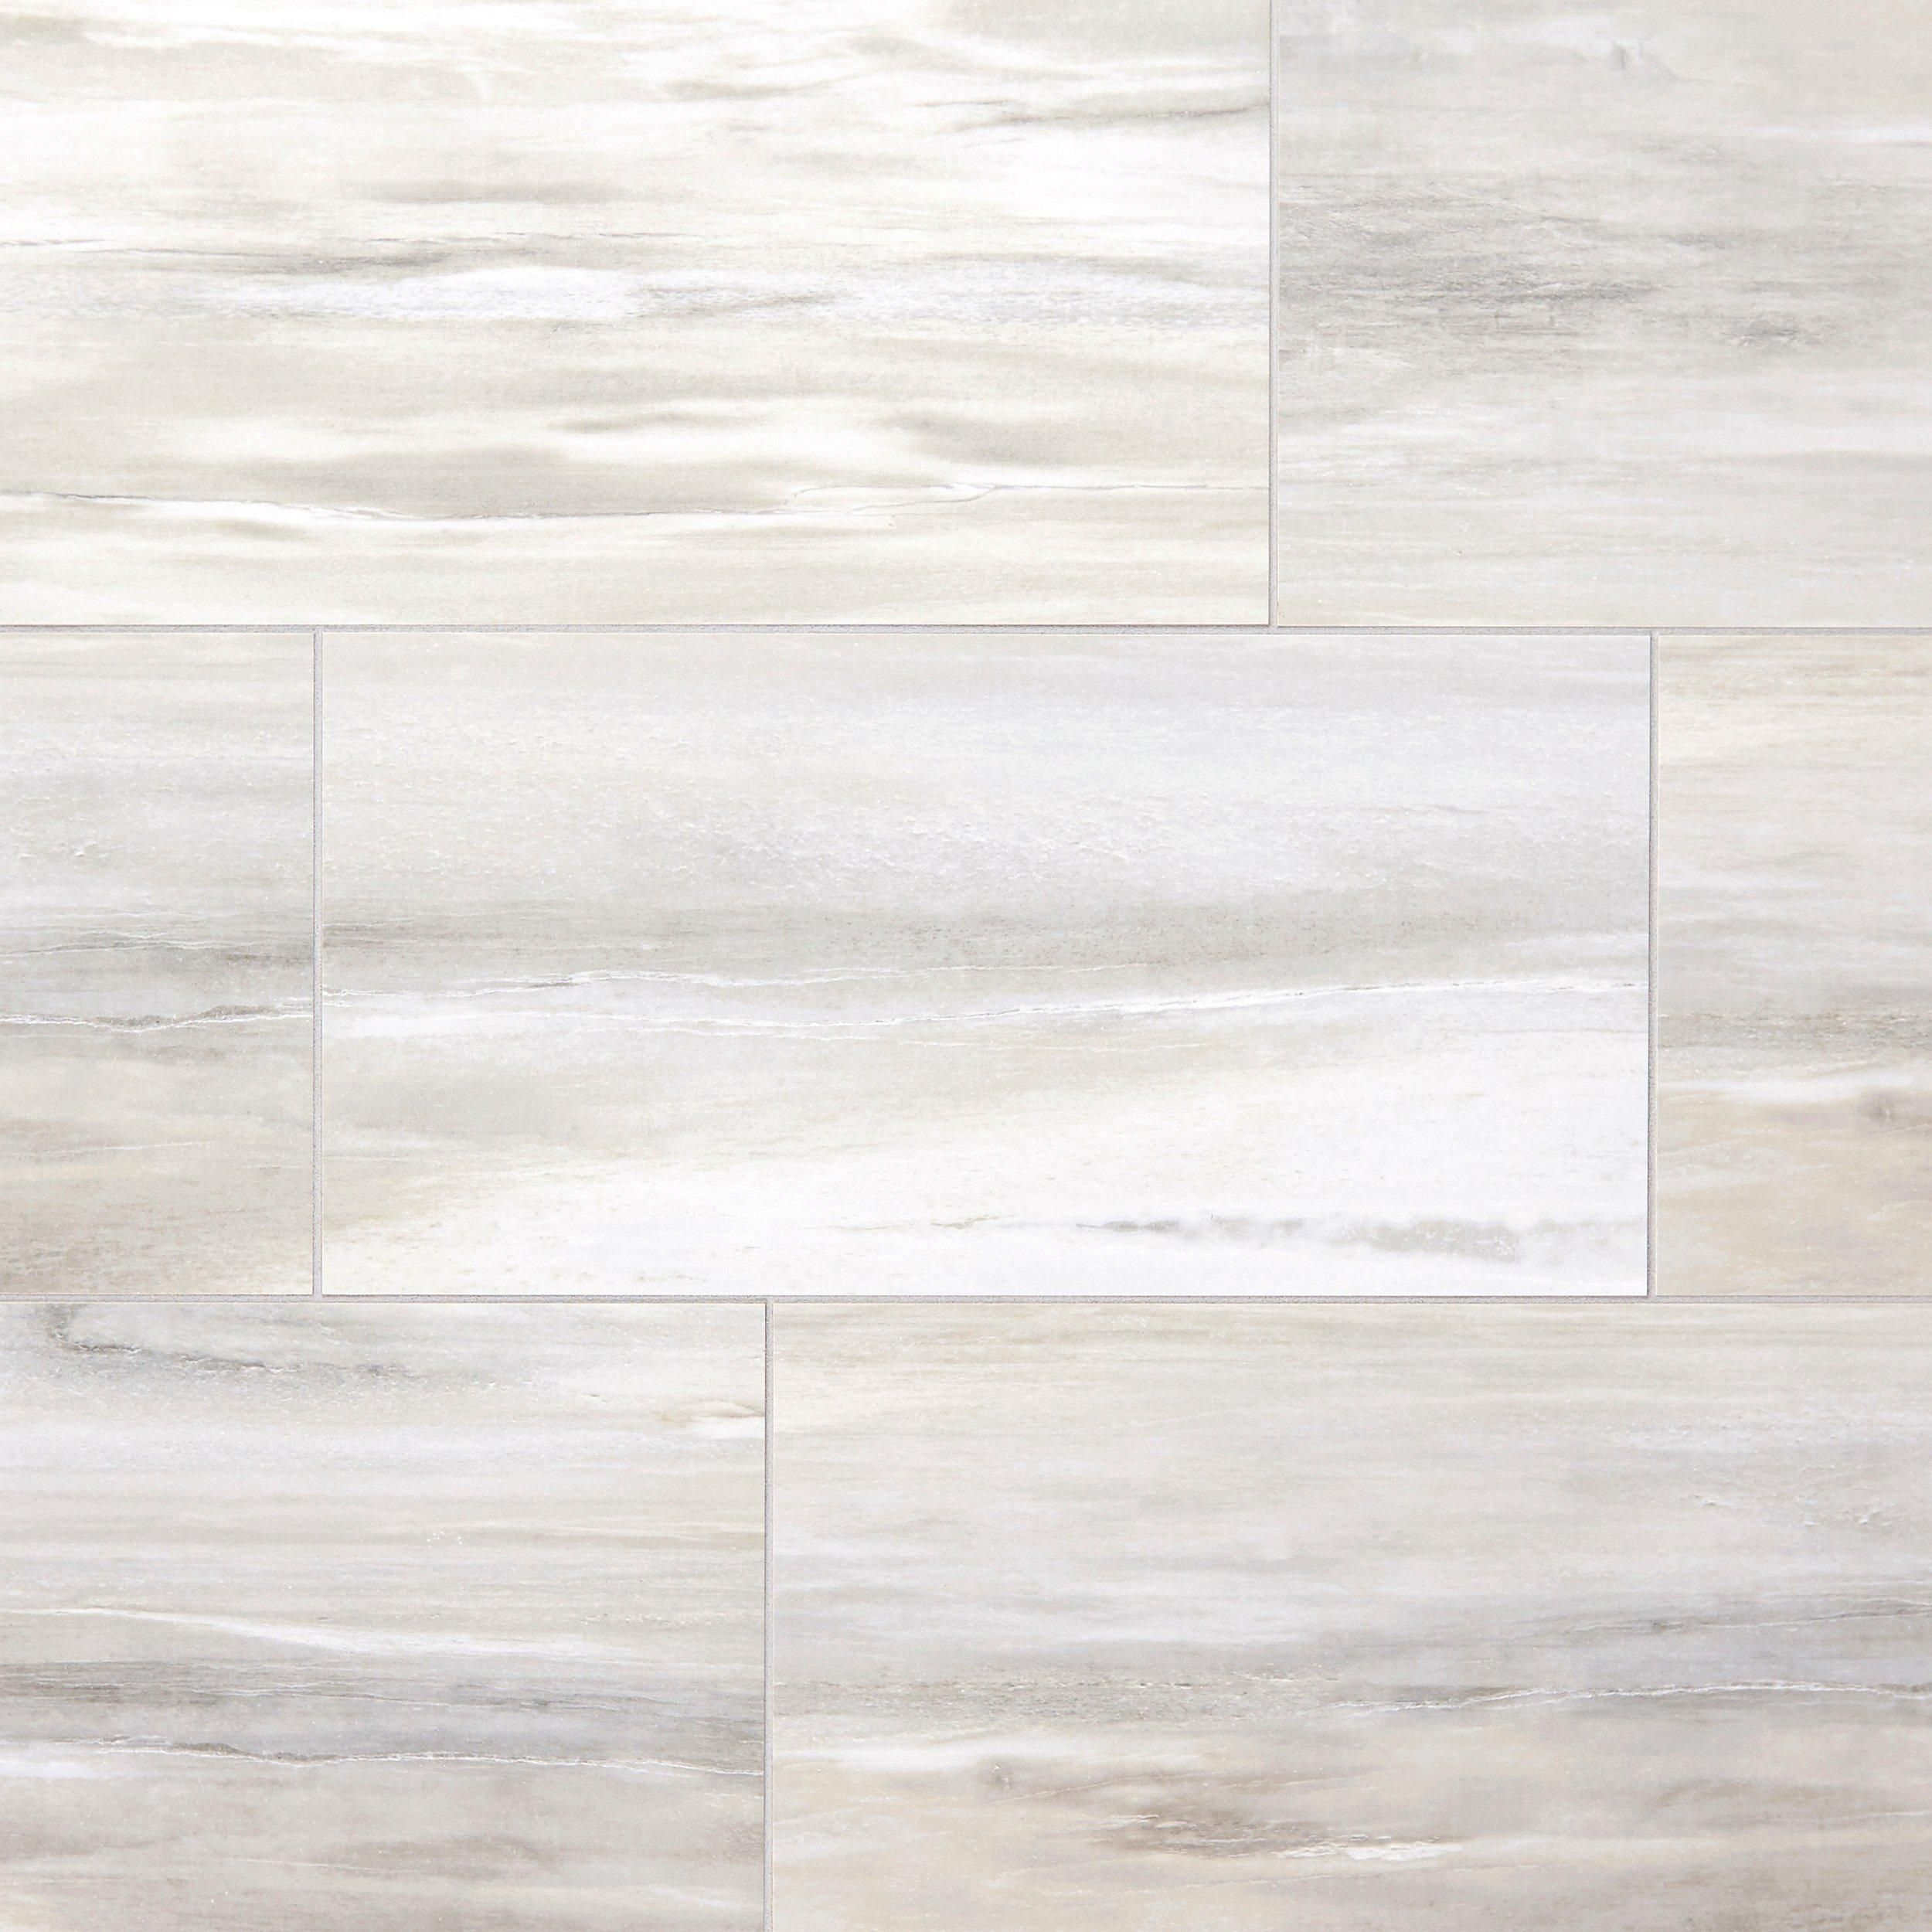 Solano Ivory Porcelain Tile Floor Decor Ivory Porcelain Tiles Porcelain Floor Tiles Porcelain Tile